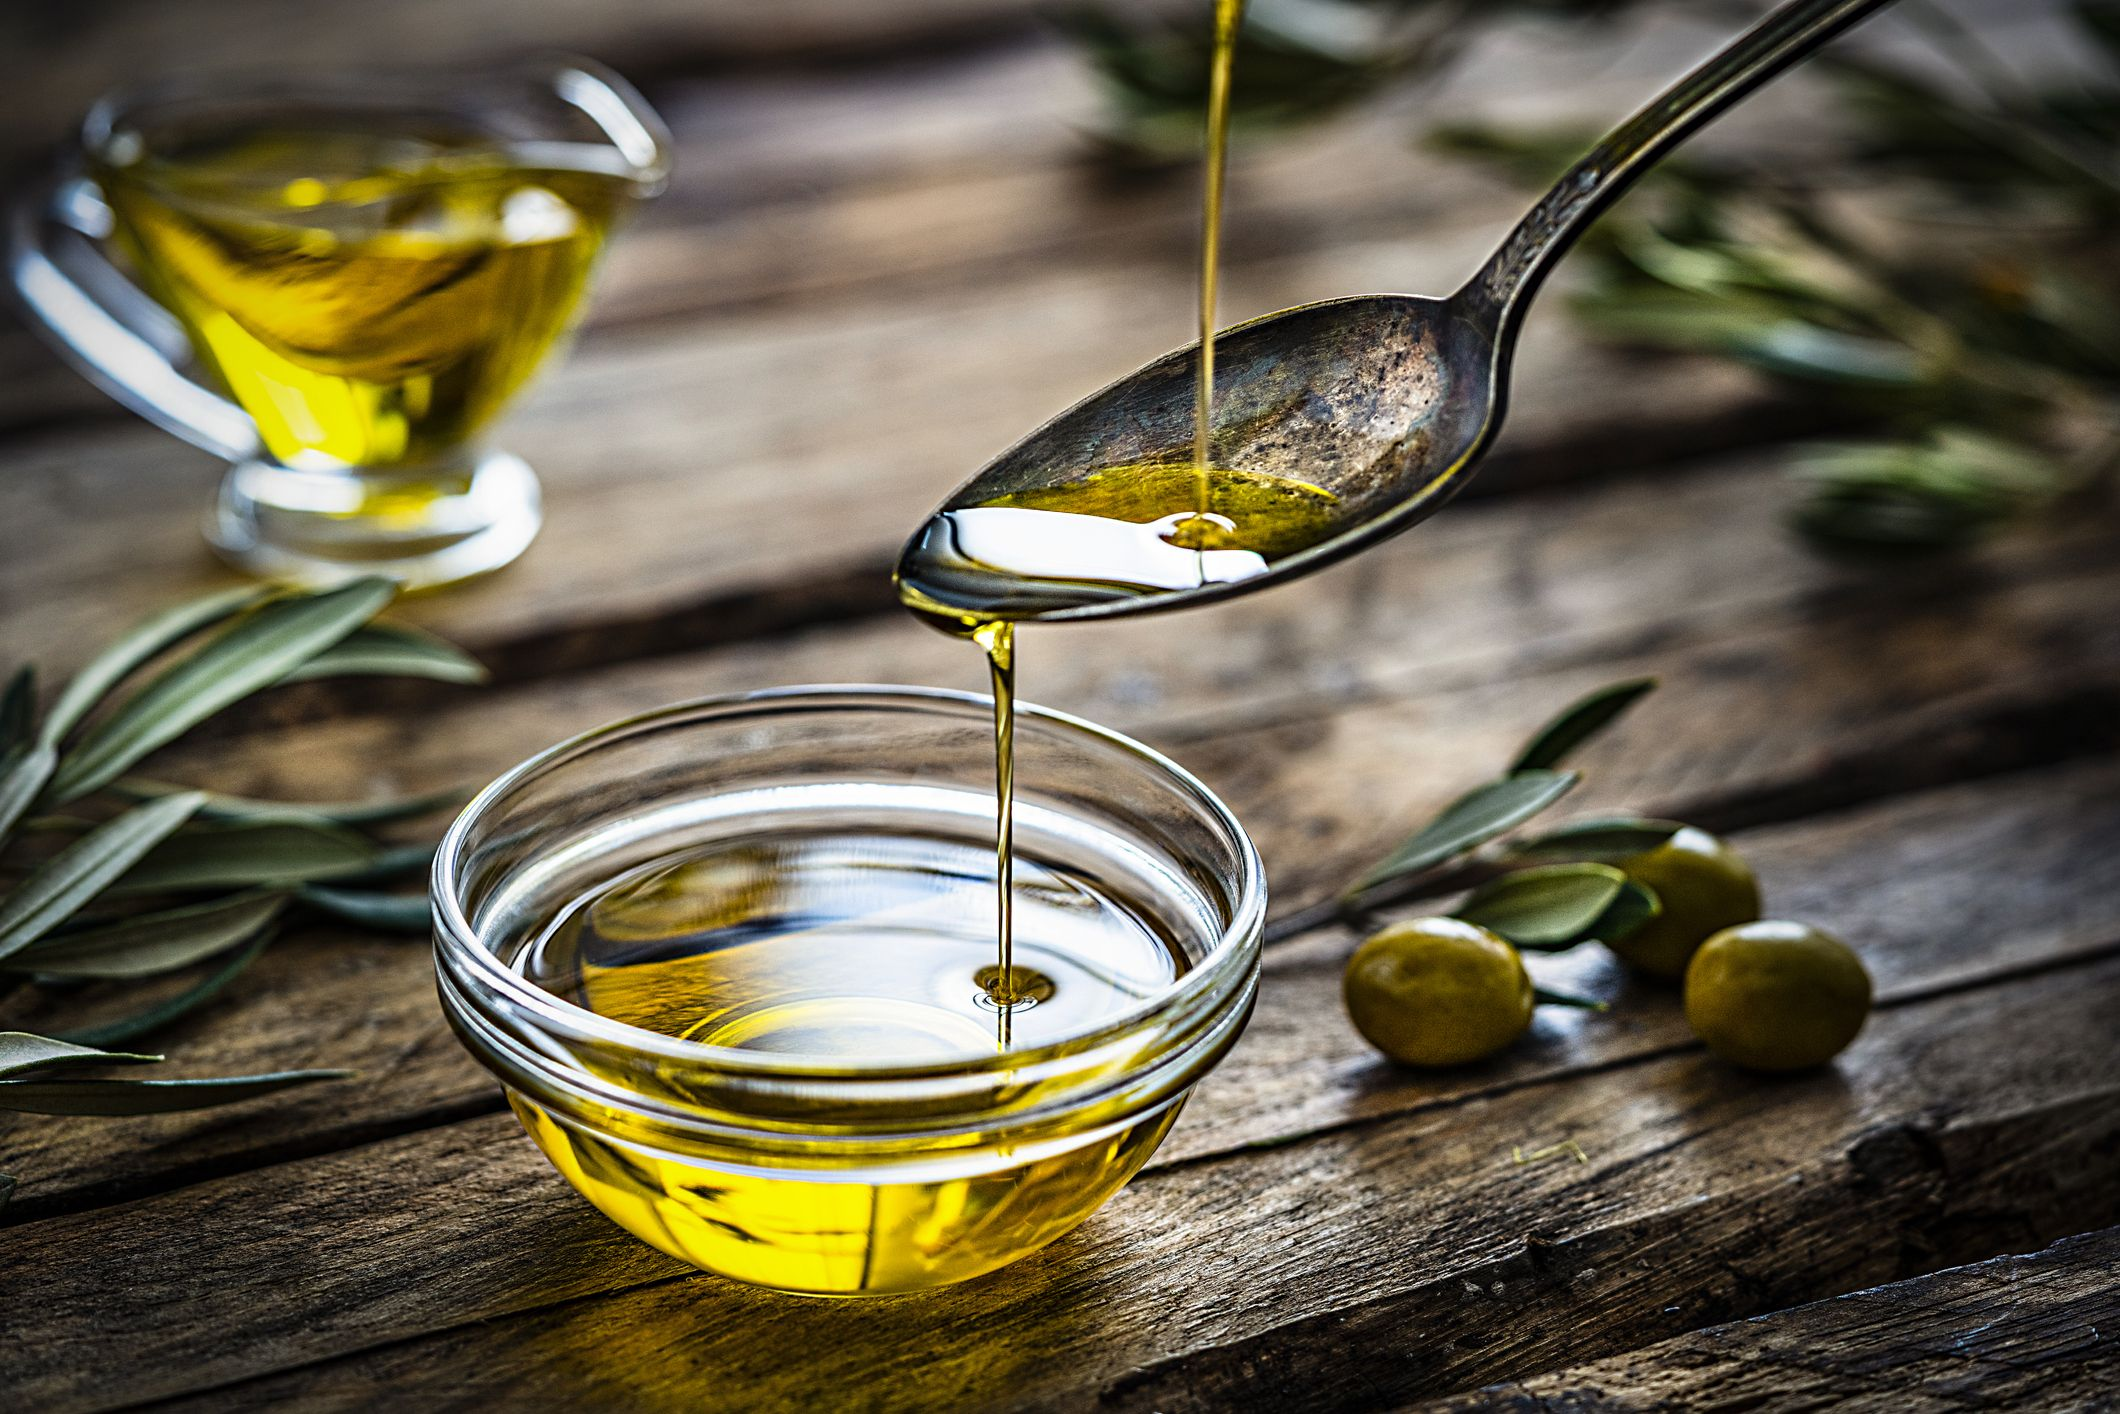 pouring-extra-virgin-olive-oil-royalty-free-image-1597238508.jpg